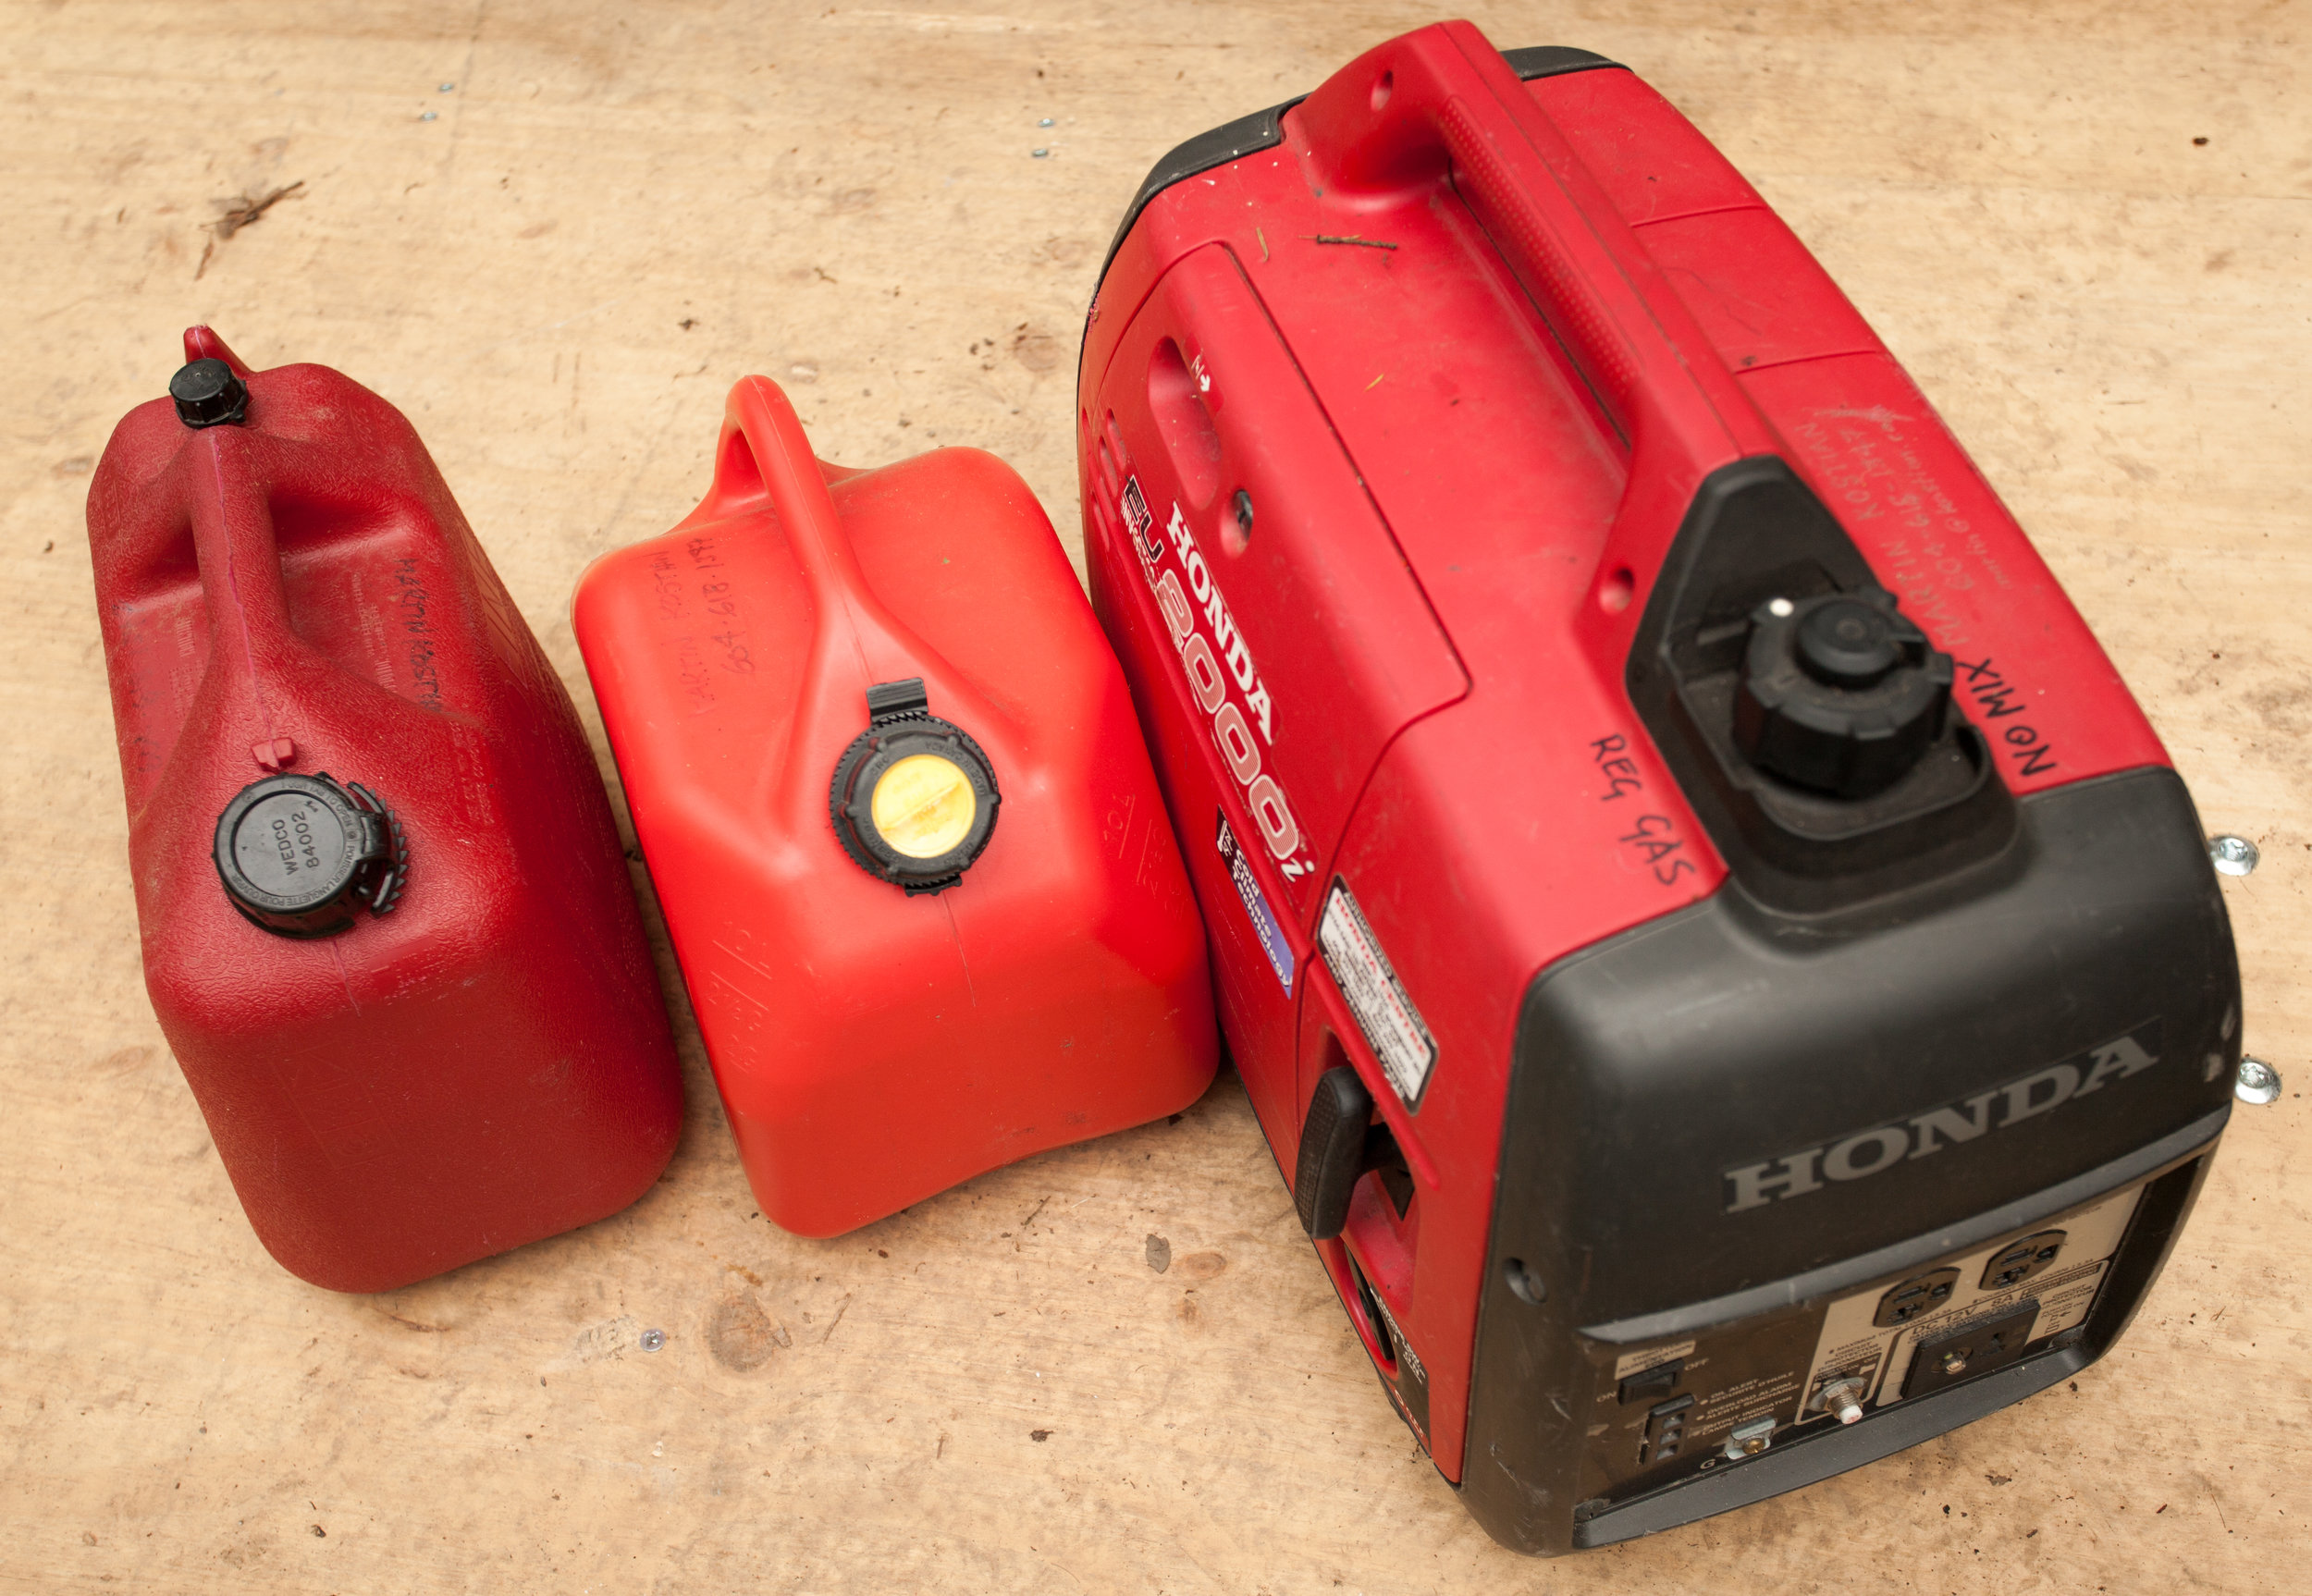 2000w Honda Generator - $60/day - Also includes 2 50' A/C extension cords2 Jerry cans